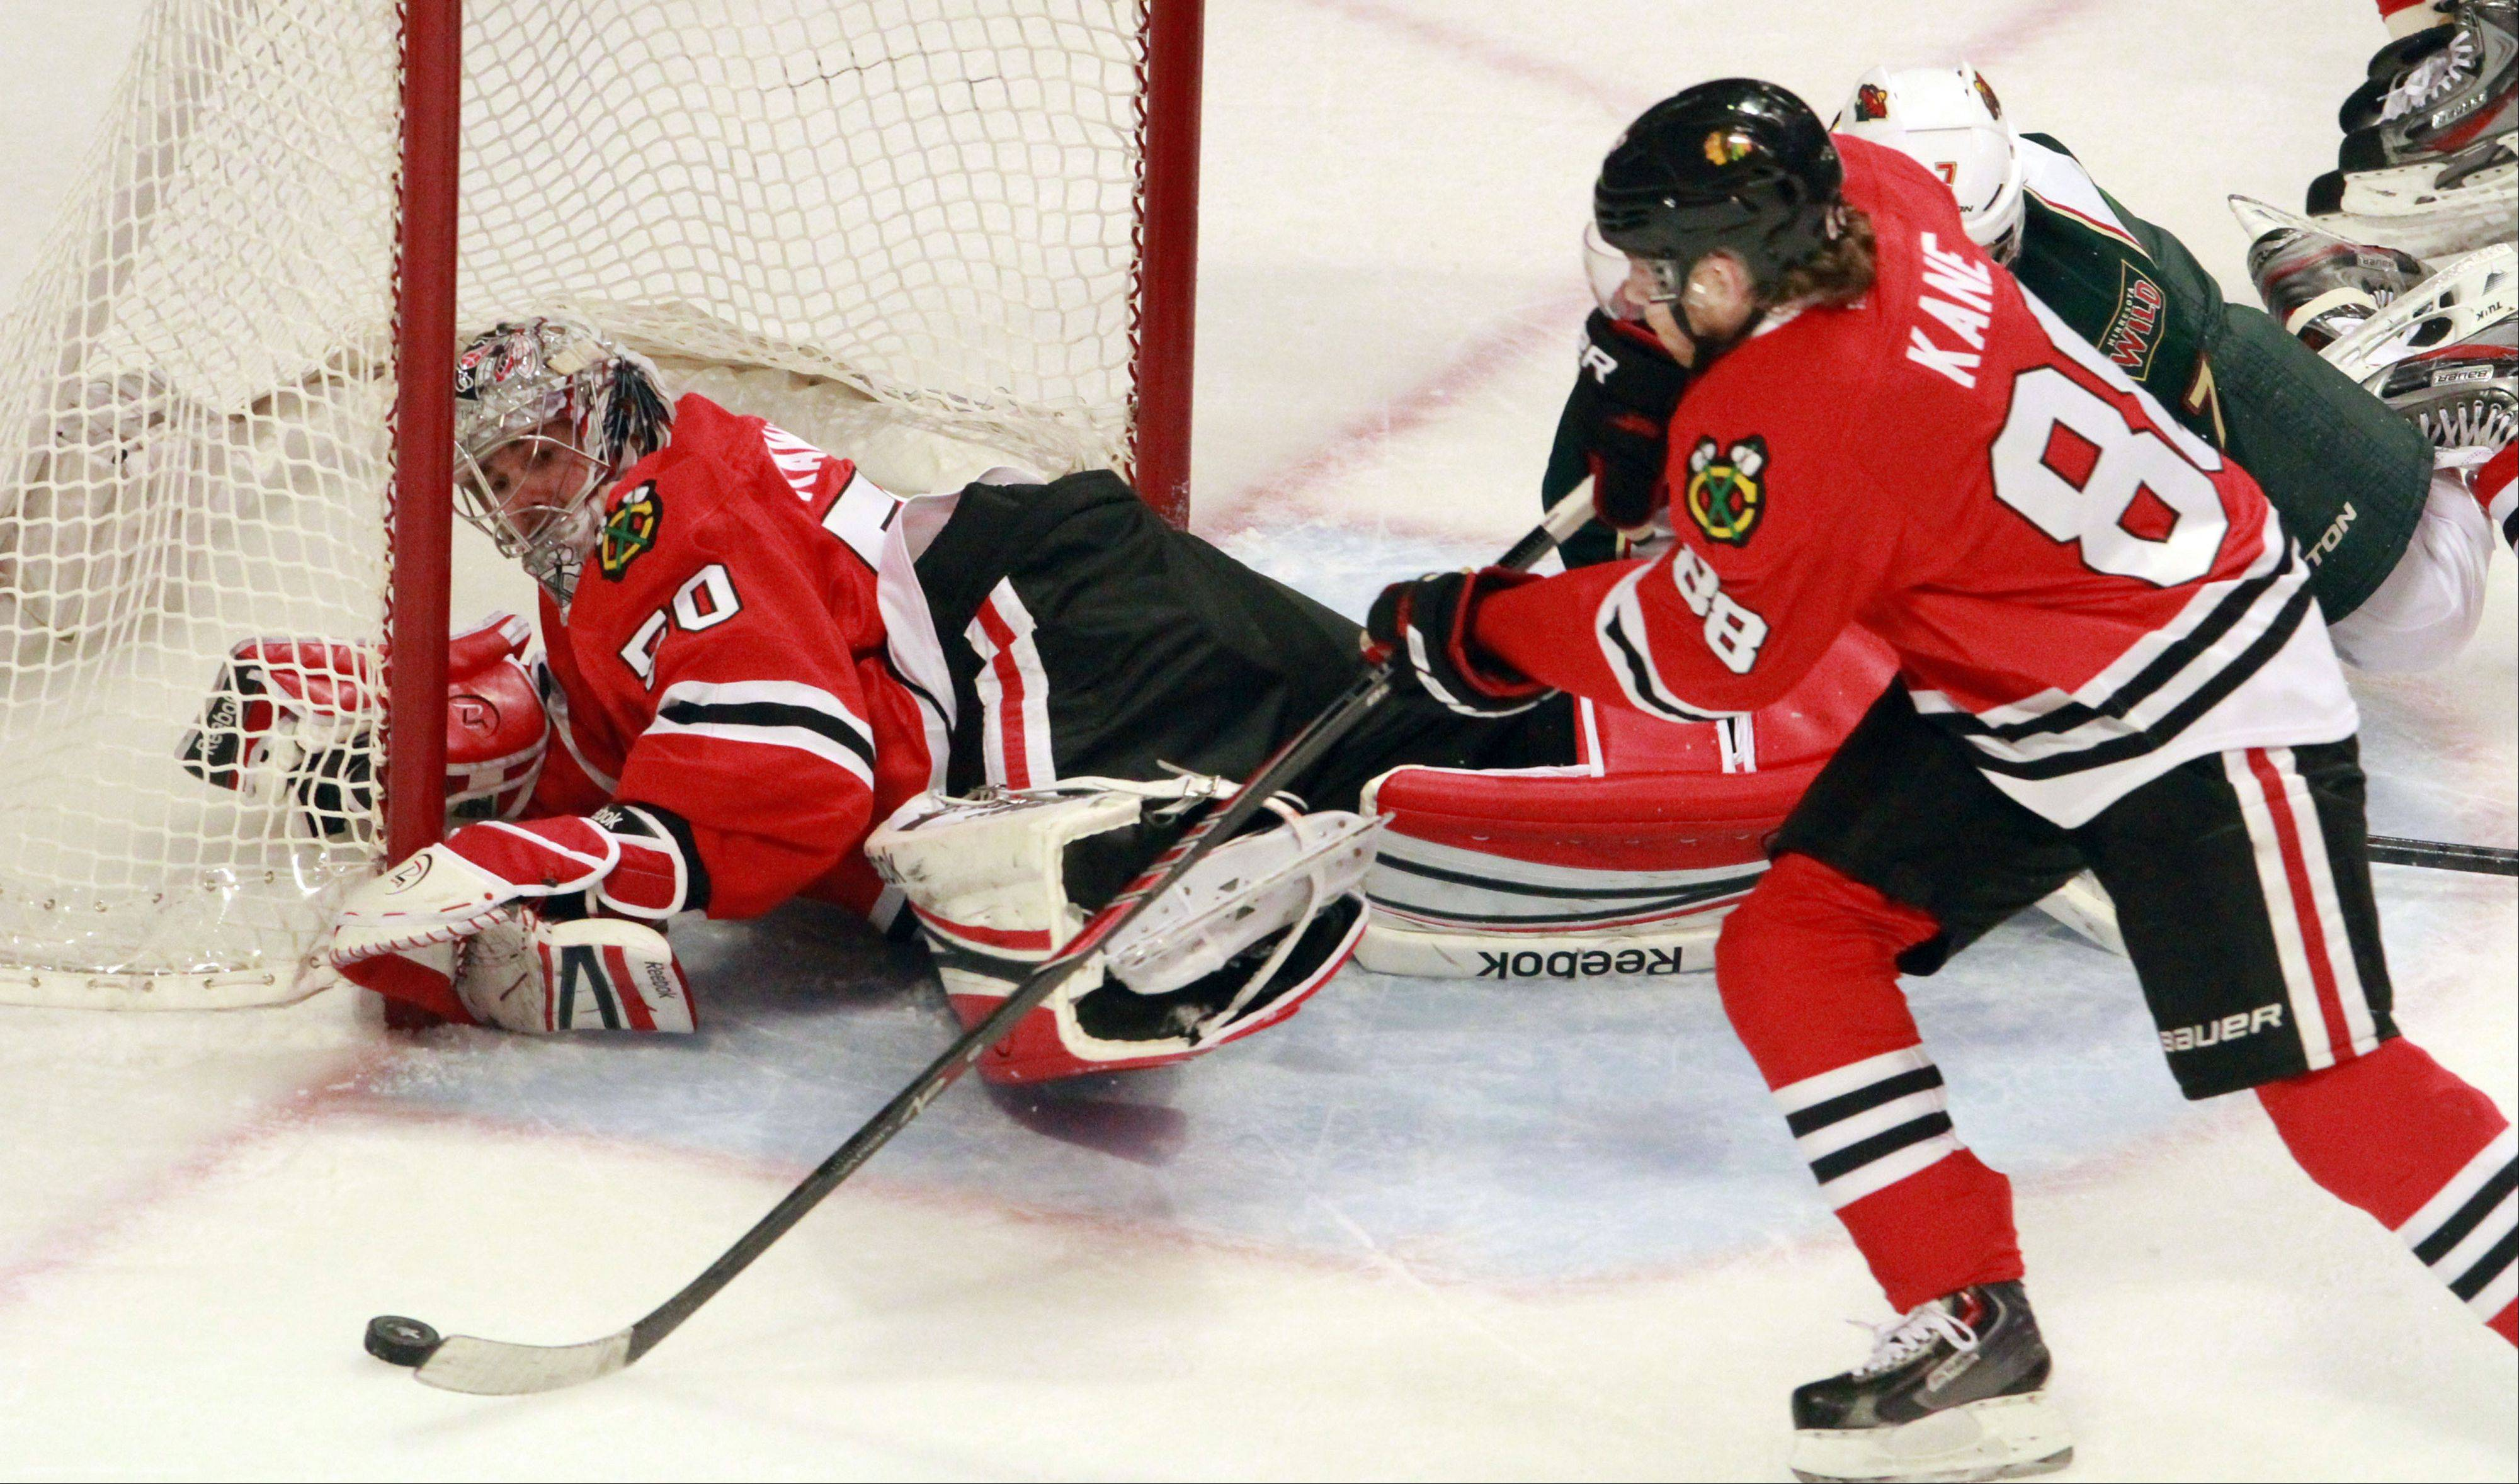 Patrick Kane, here clearing the puck out for goalie Corey Crawford in Game 5 against Minnesota, and the rest of the Blackhawks know things will intensify in Round 2 of the playoffs.